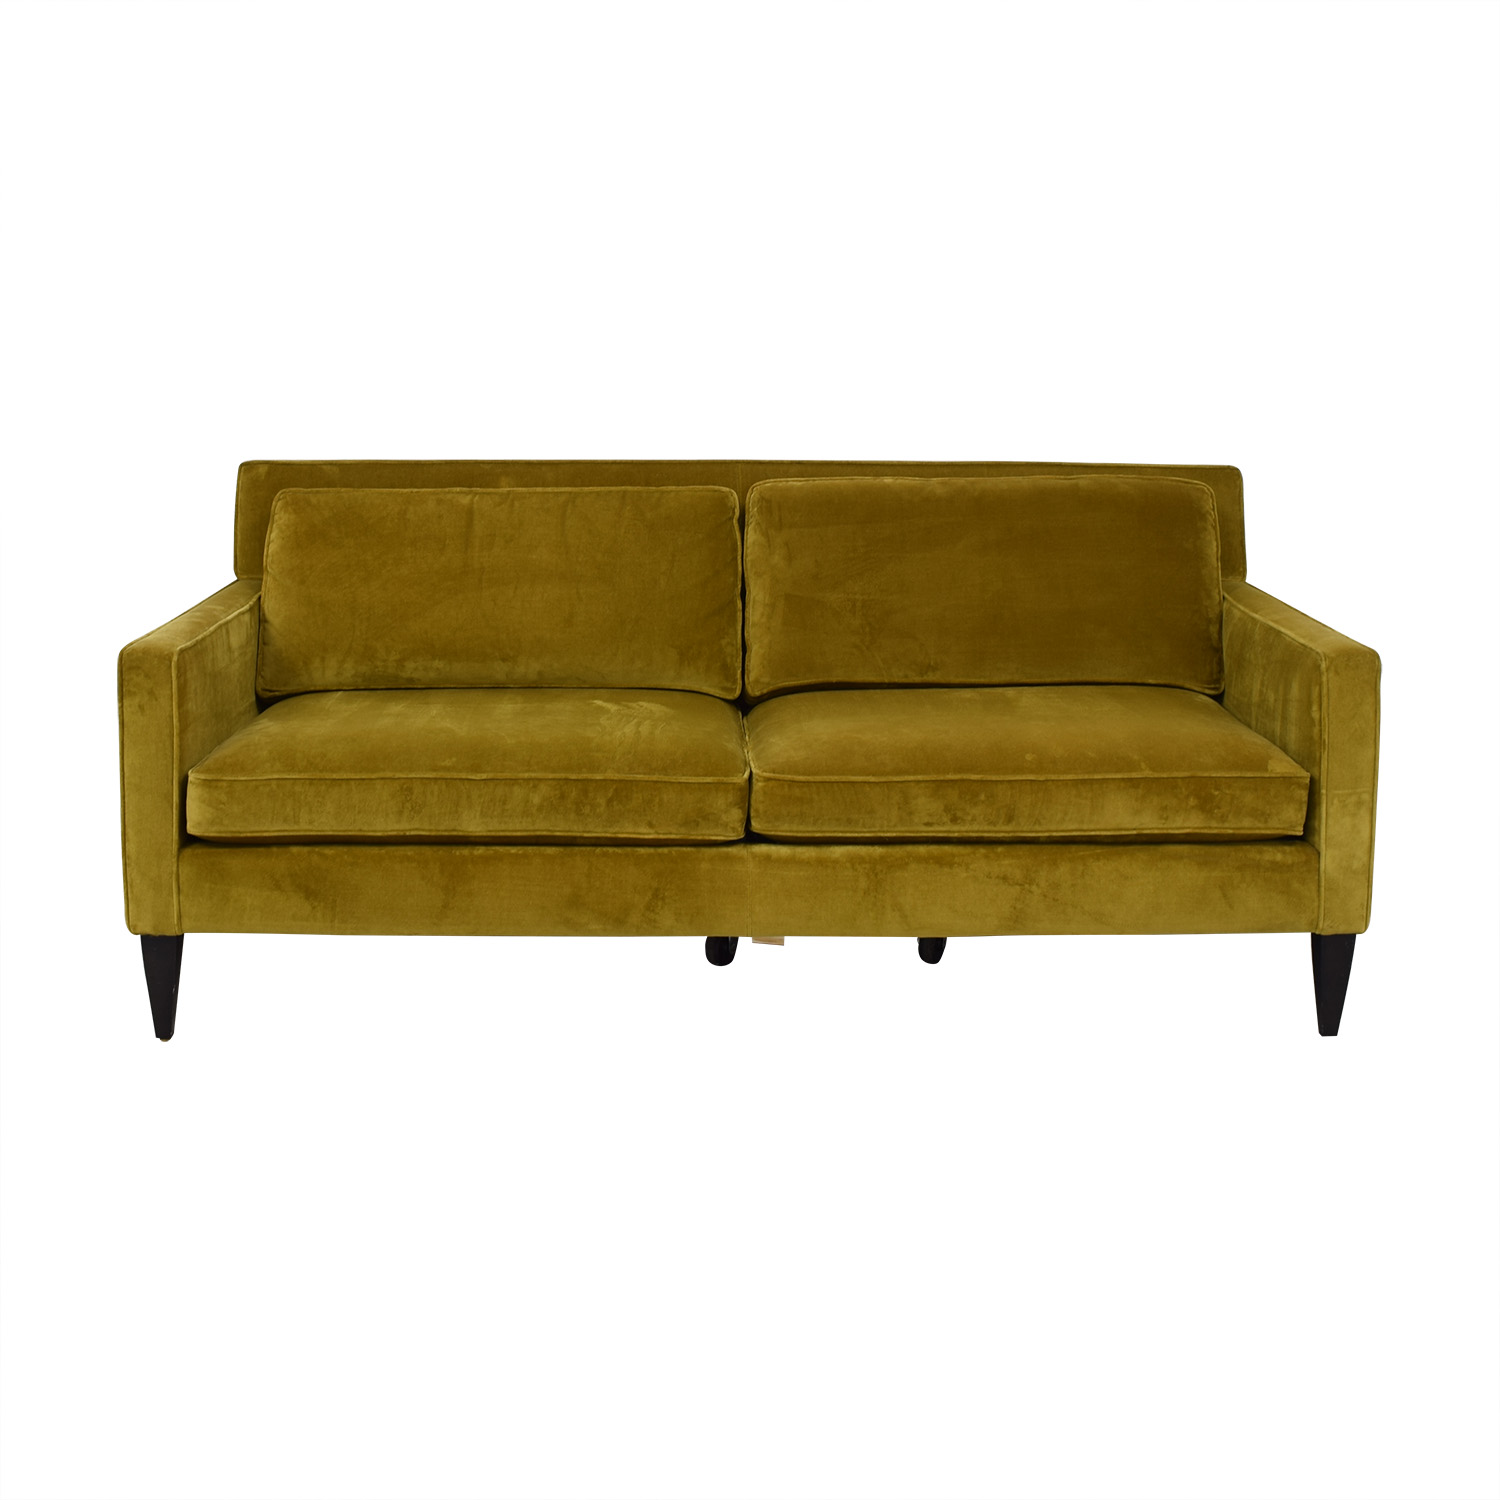 shop Crate & Barrel Rochelle Mid Century Apartment Sofa Crate & Barrel Classic Sofas